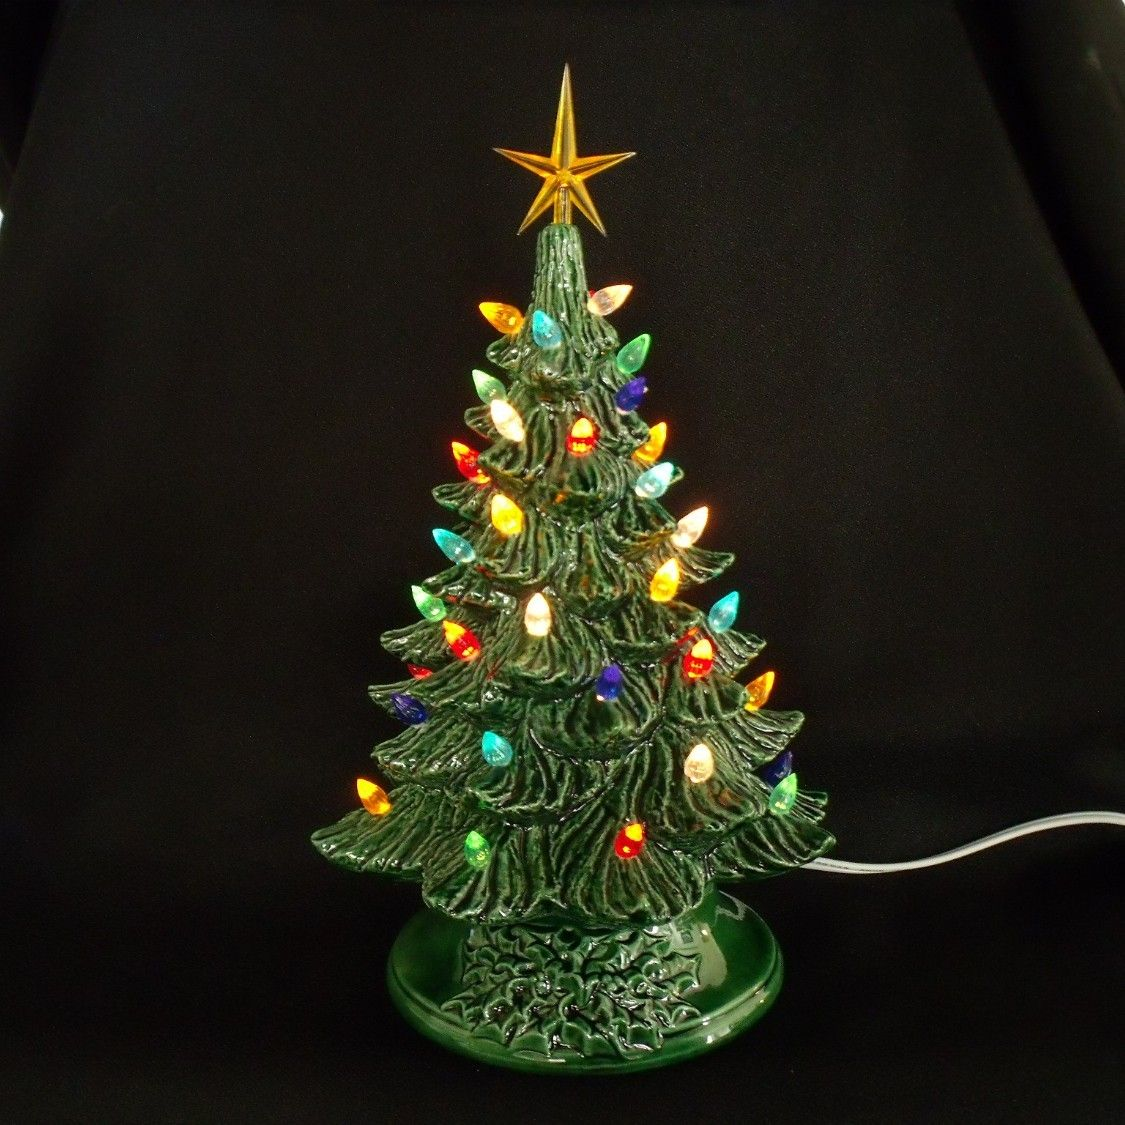 Vintage Style Ceramic Christmas Tree 11 Inches - Lights Glued In ...